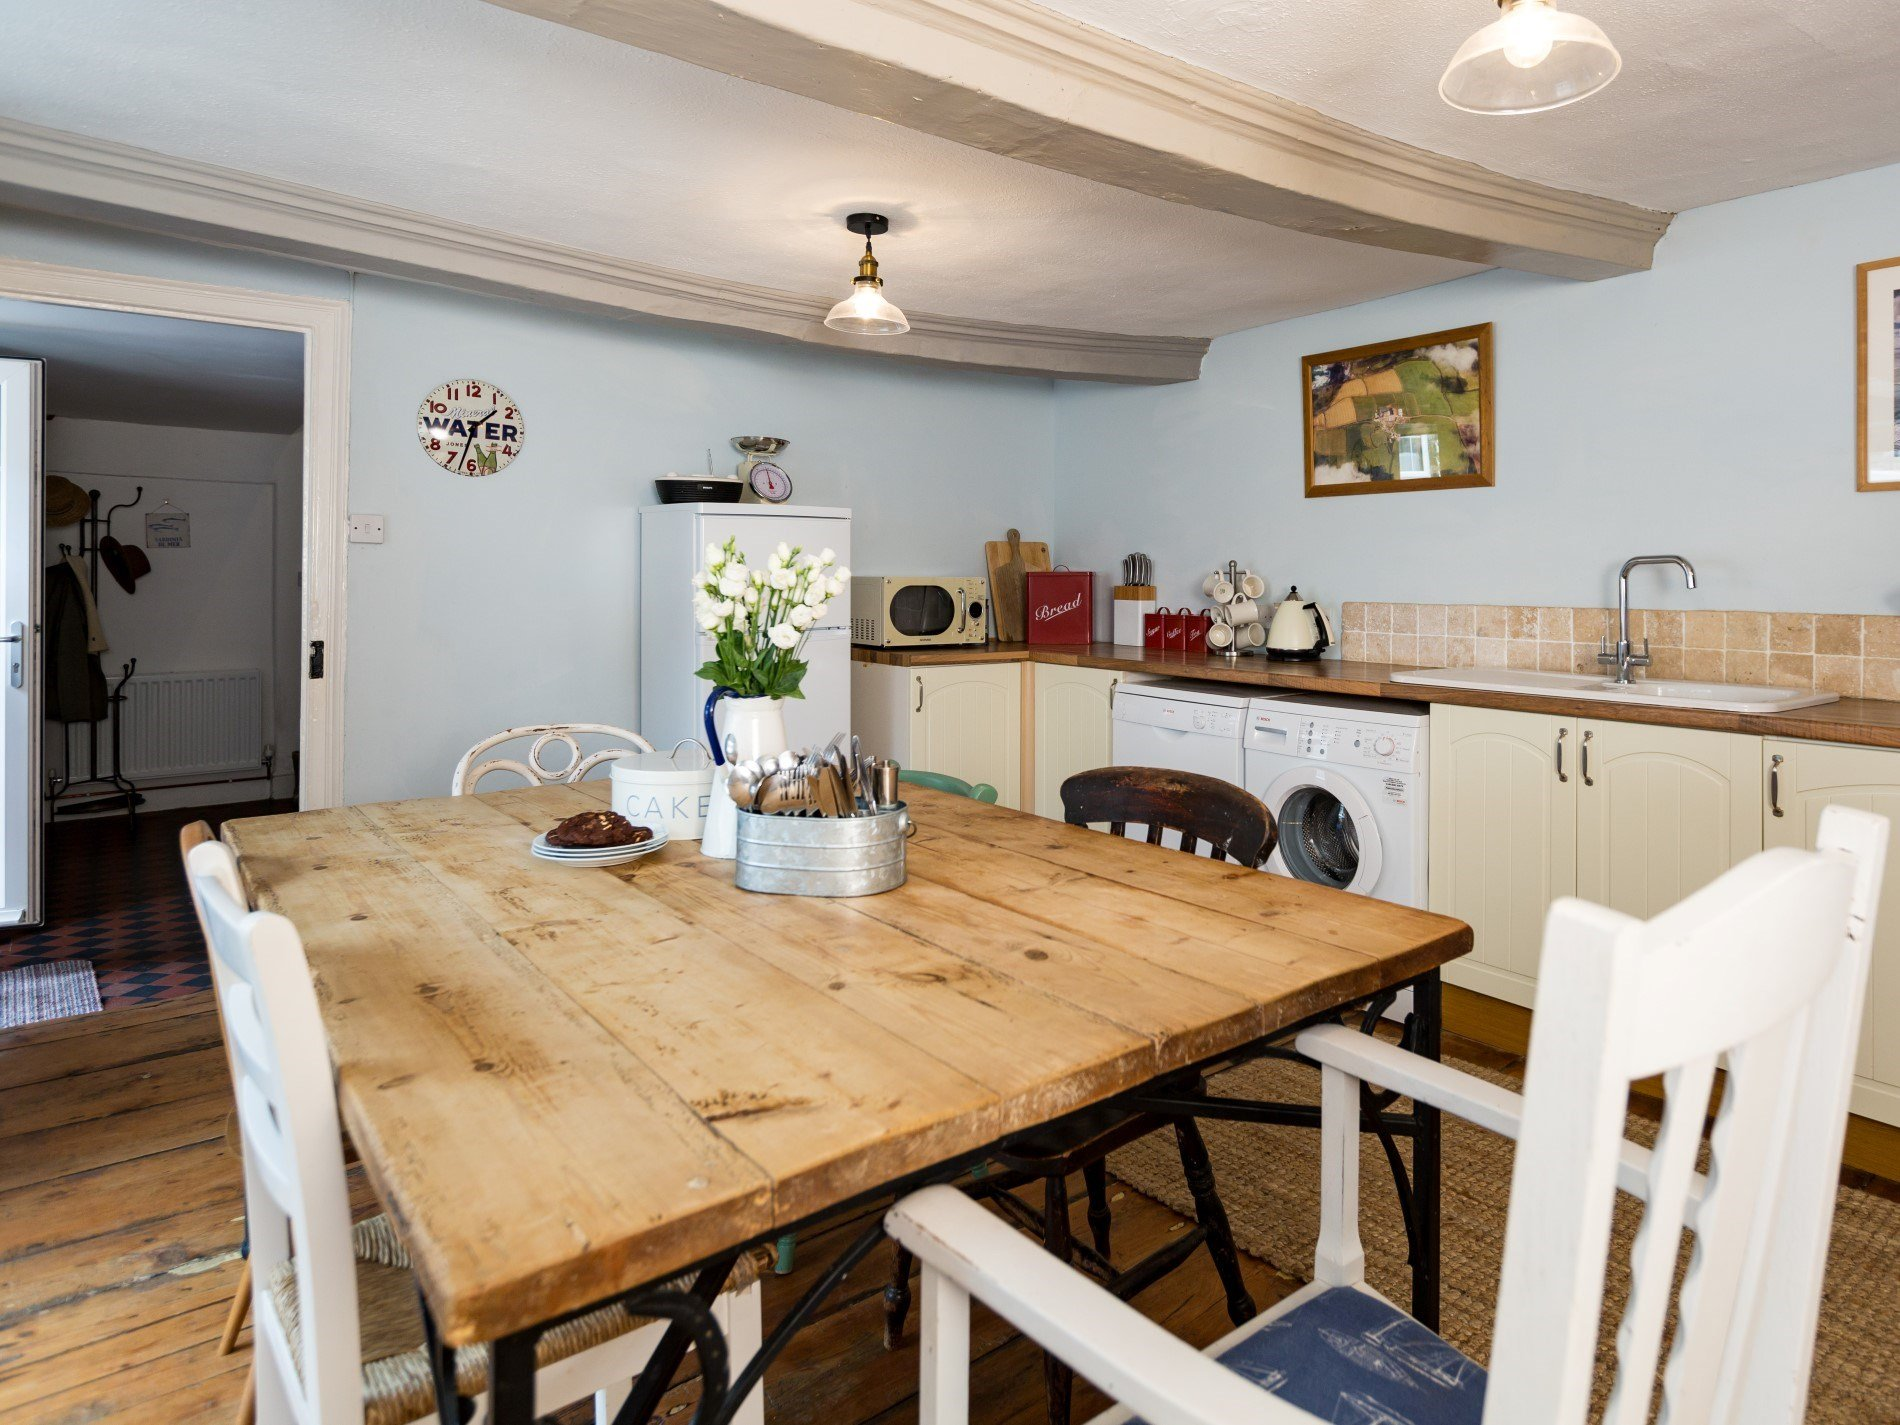 Plenty of room to seat your guests in the kitchen/diner